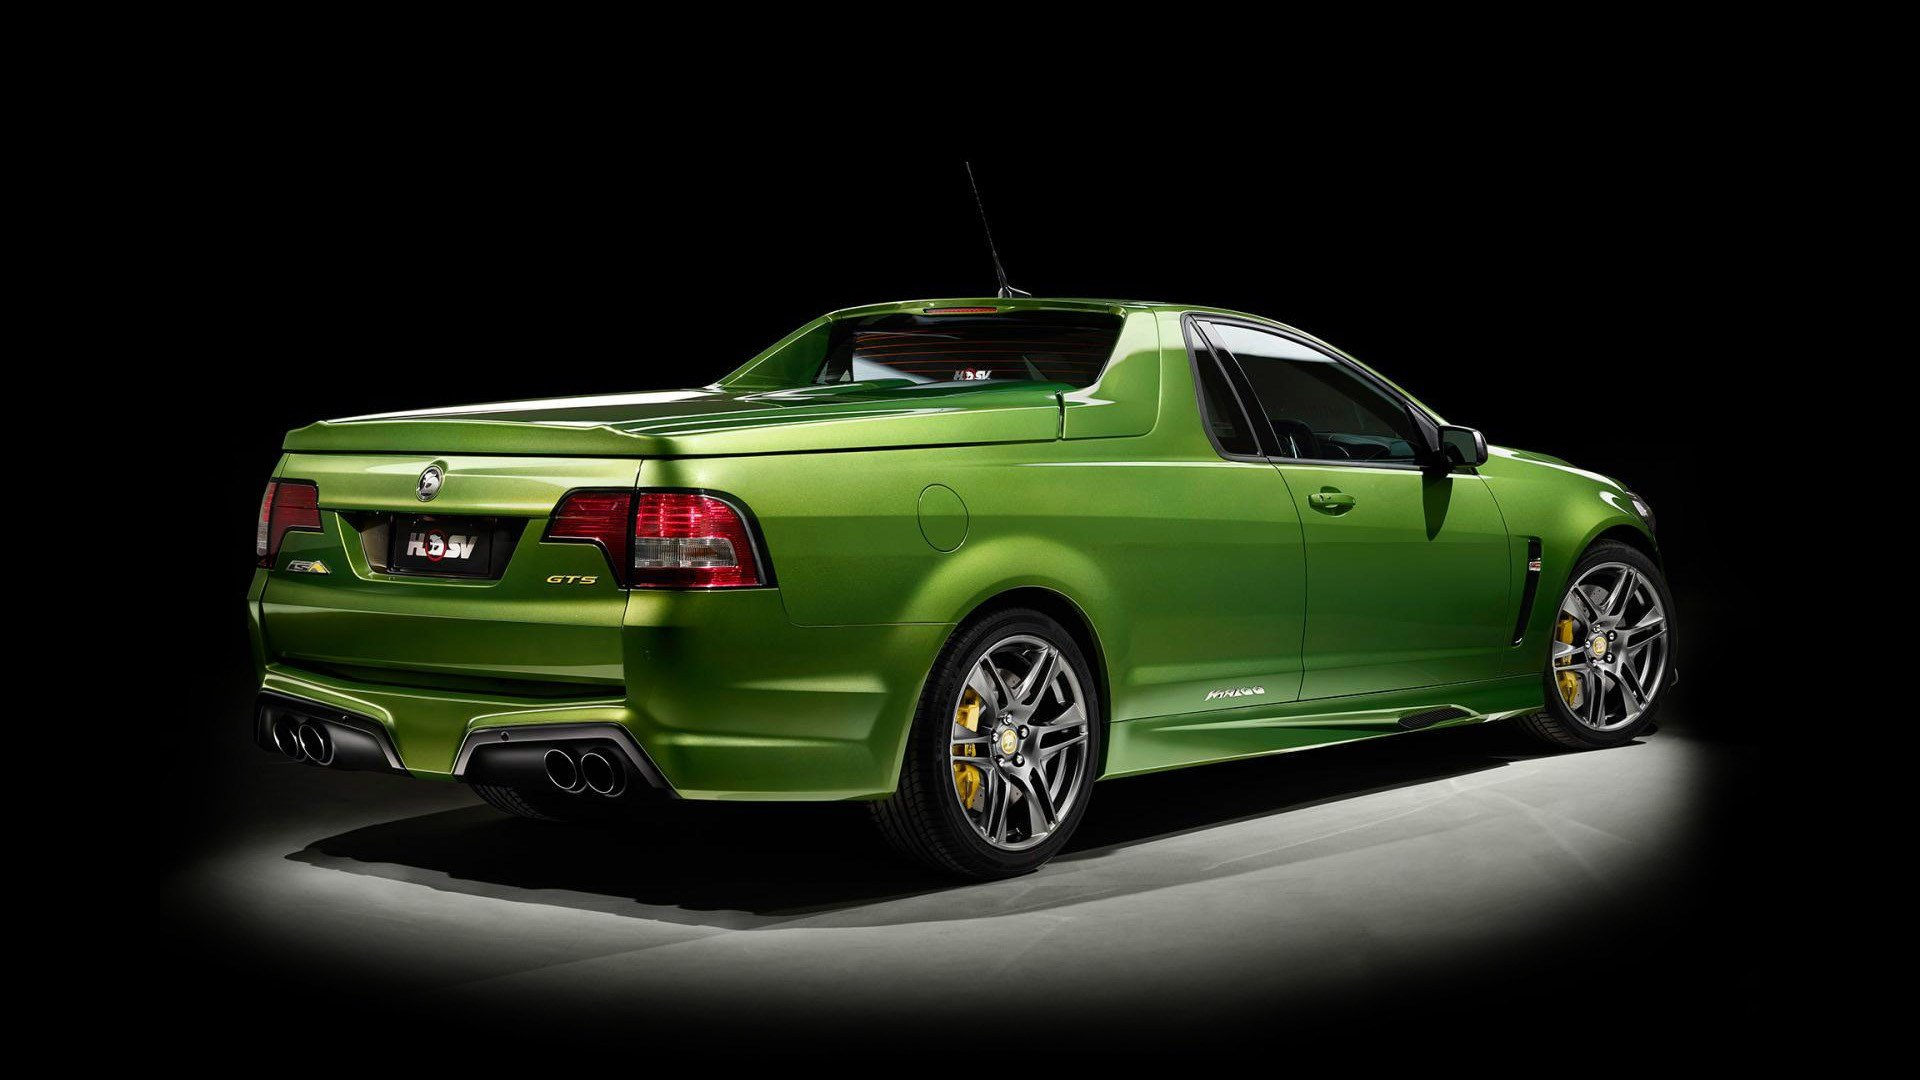 New 2015 Holden Hsv Gts Maloo Wallpapers Hd Images Wsupercars On This Month